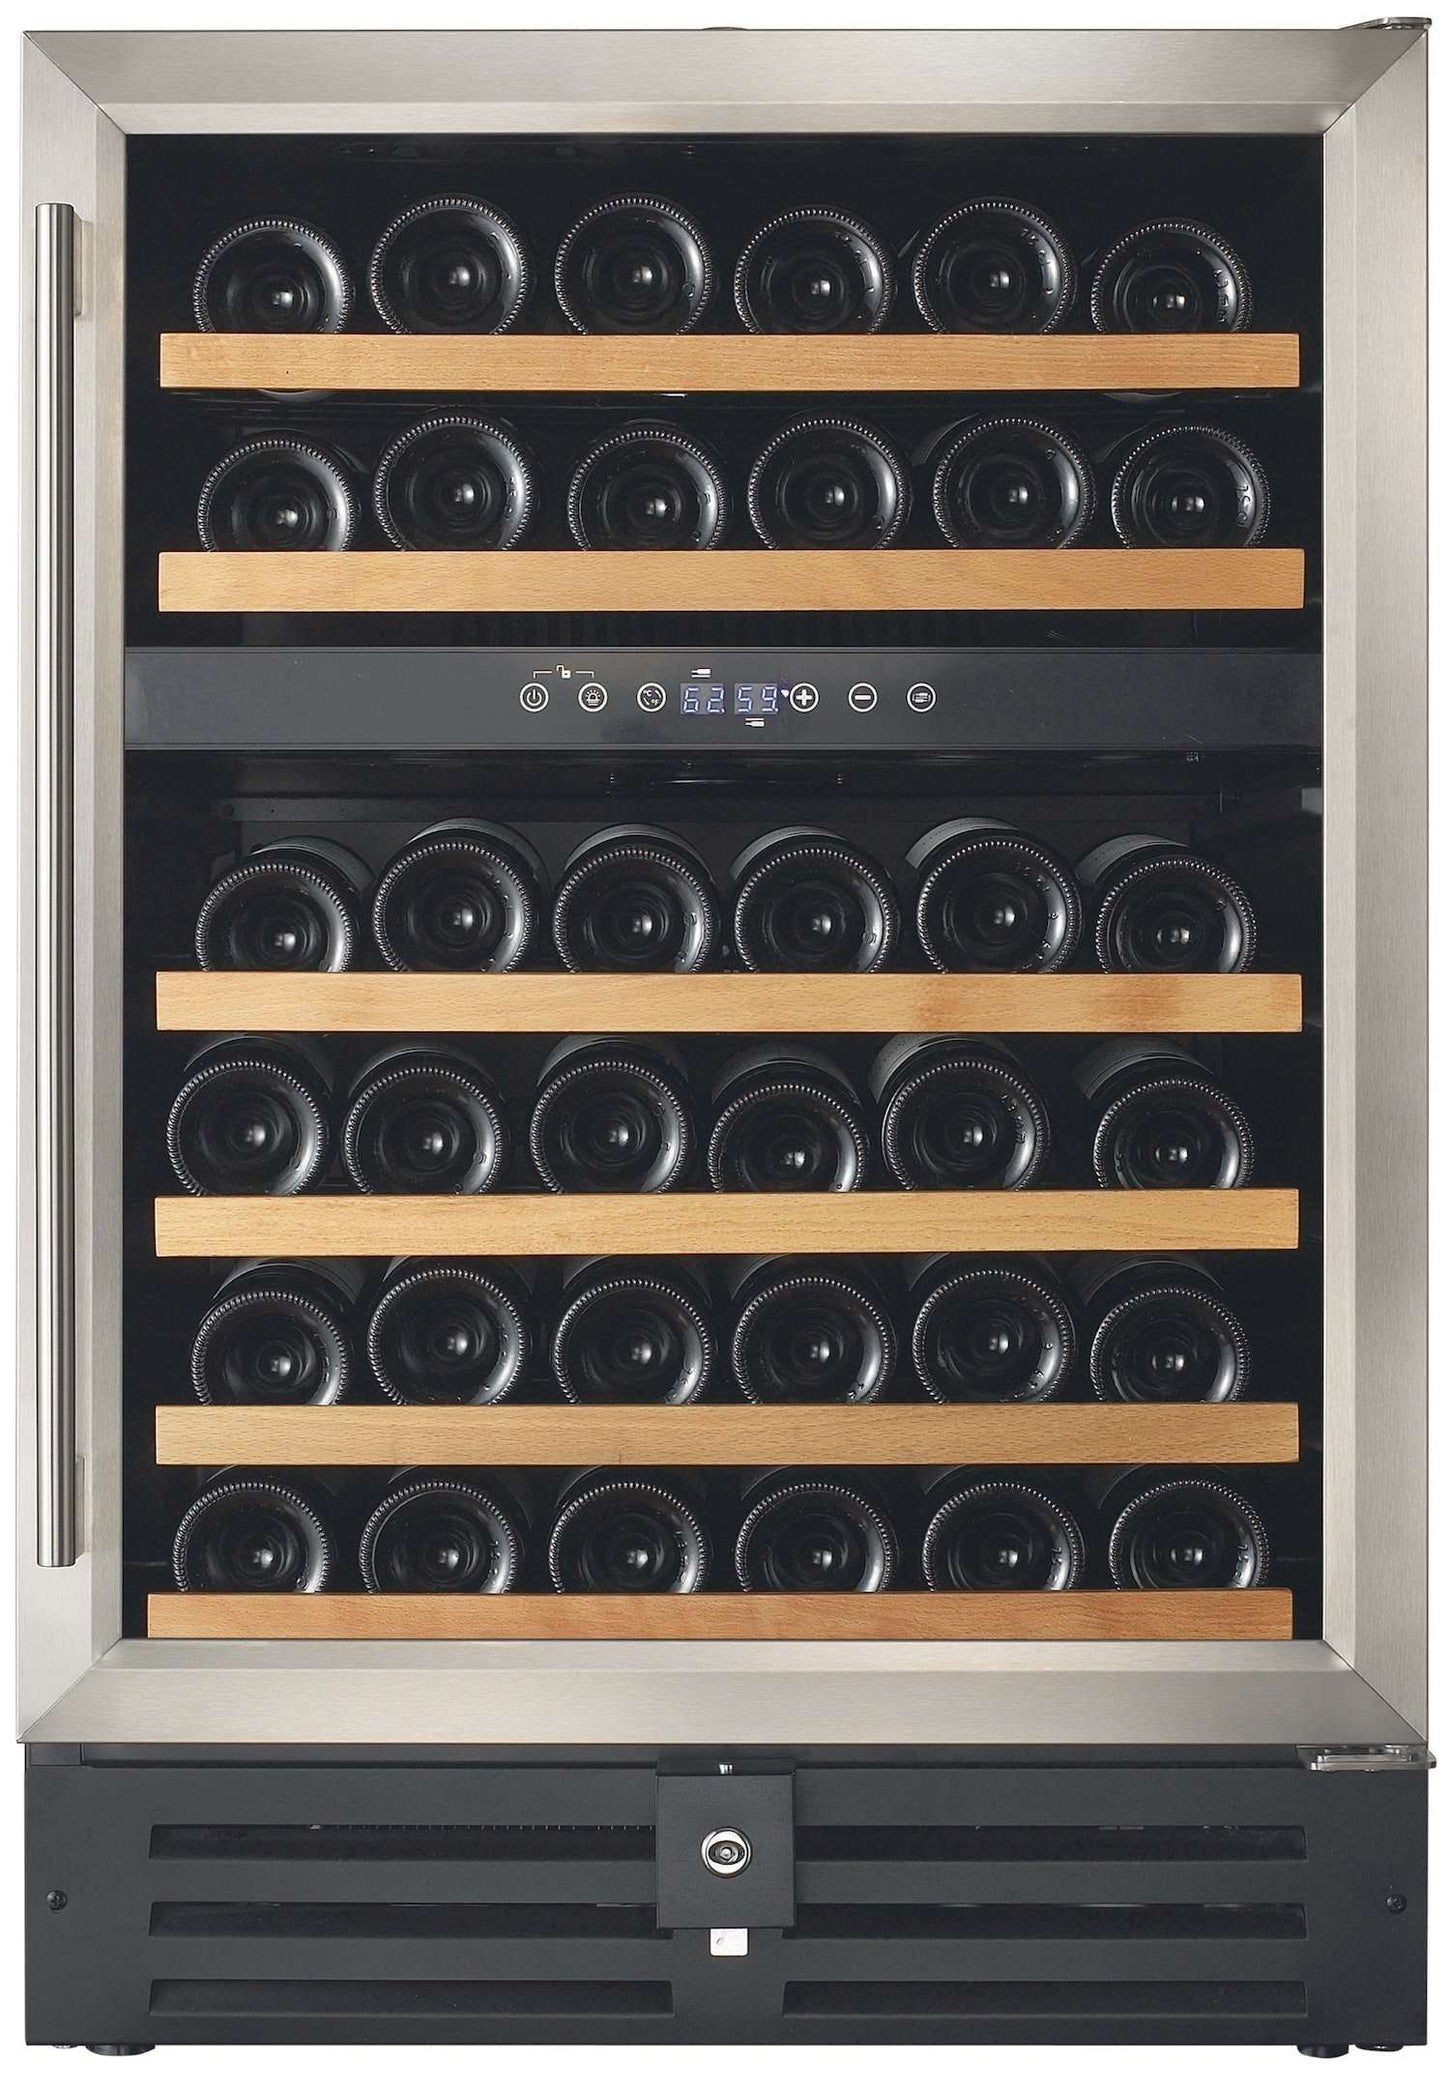 Smith & Hanks 46 Bottle Dual Zone Built-In or Free Standing Wine Cooler - RW145DR,RW145DR